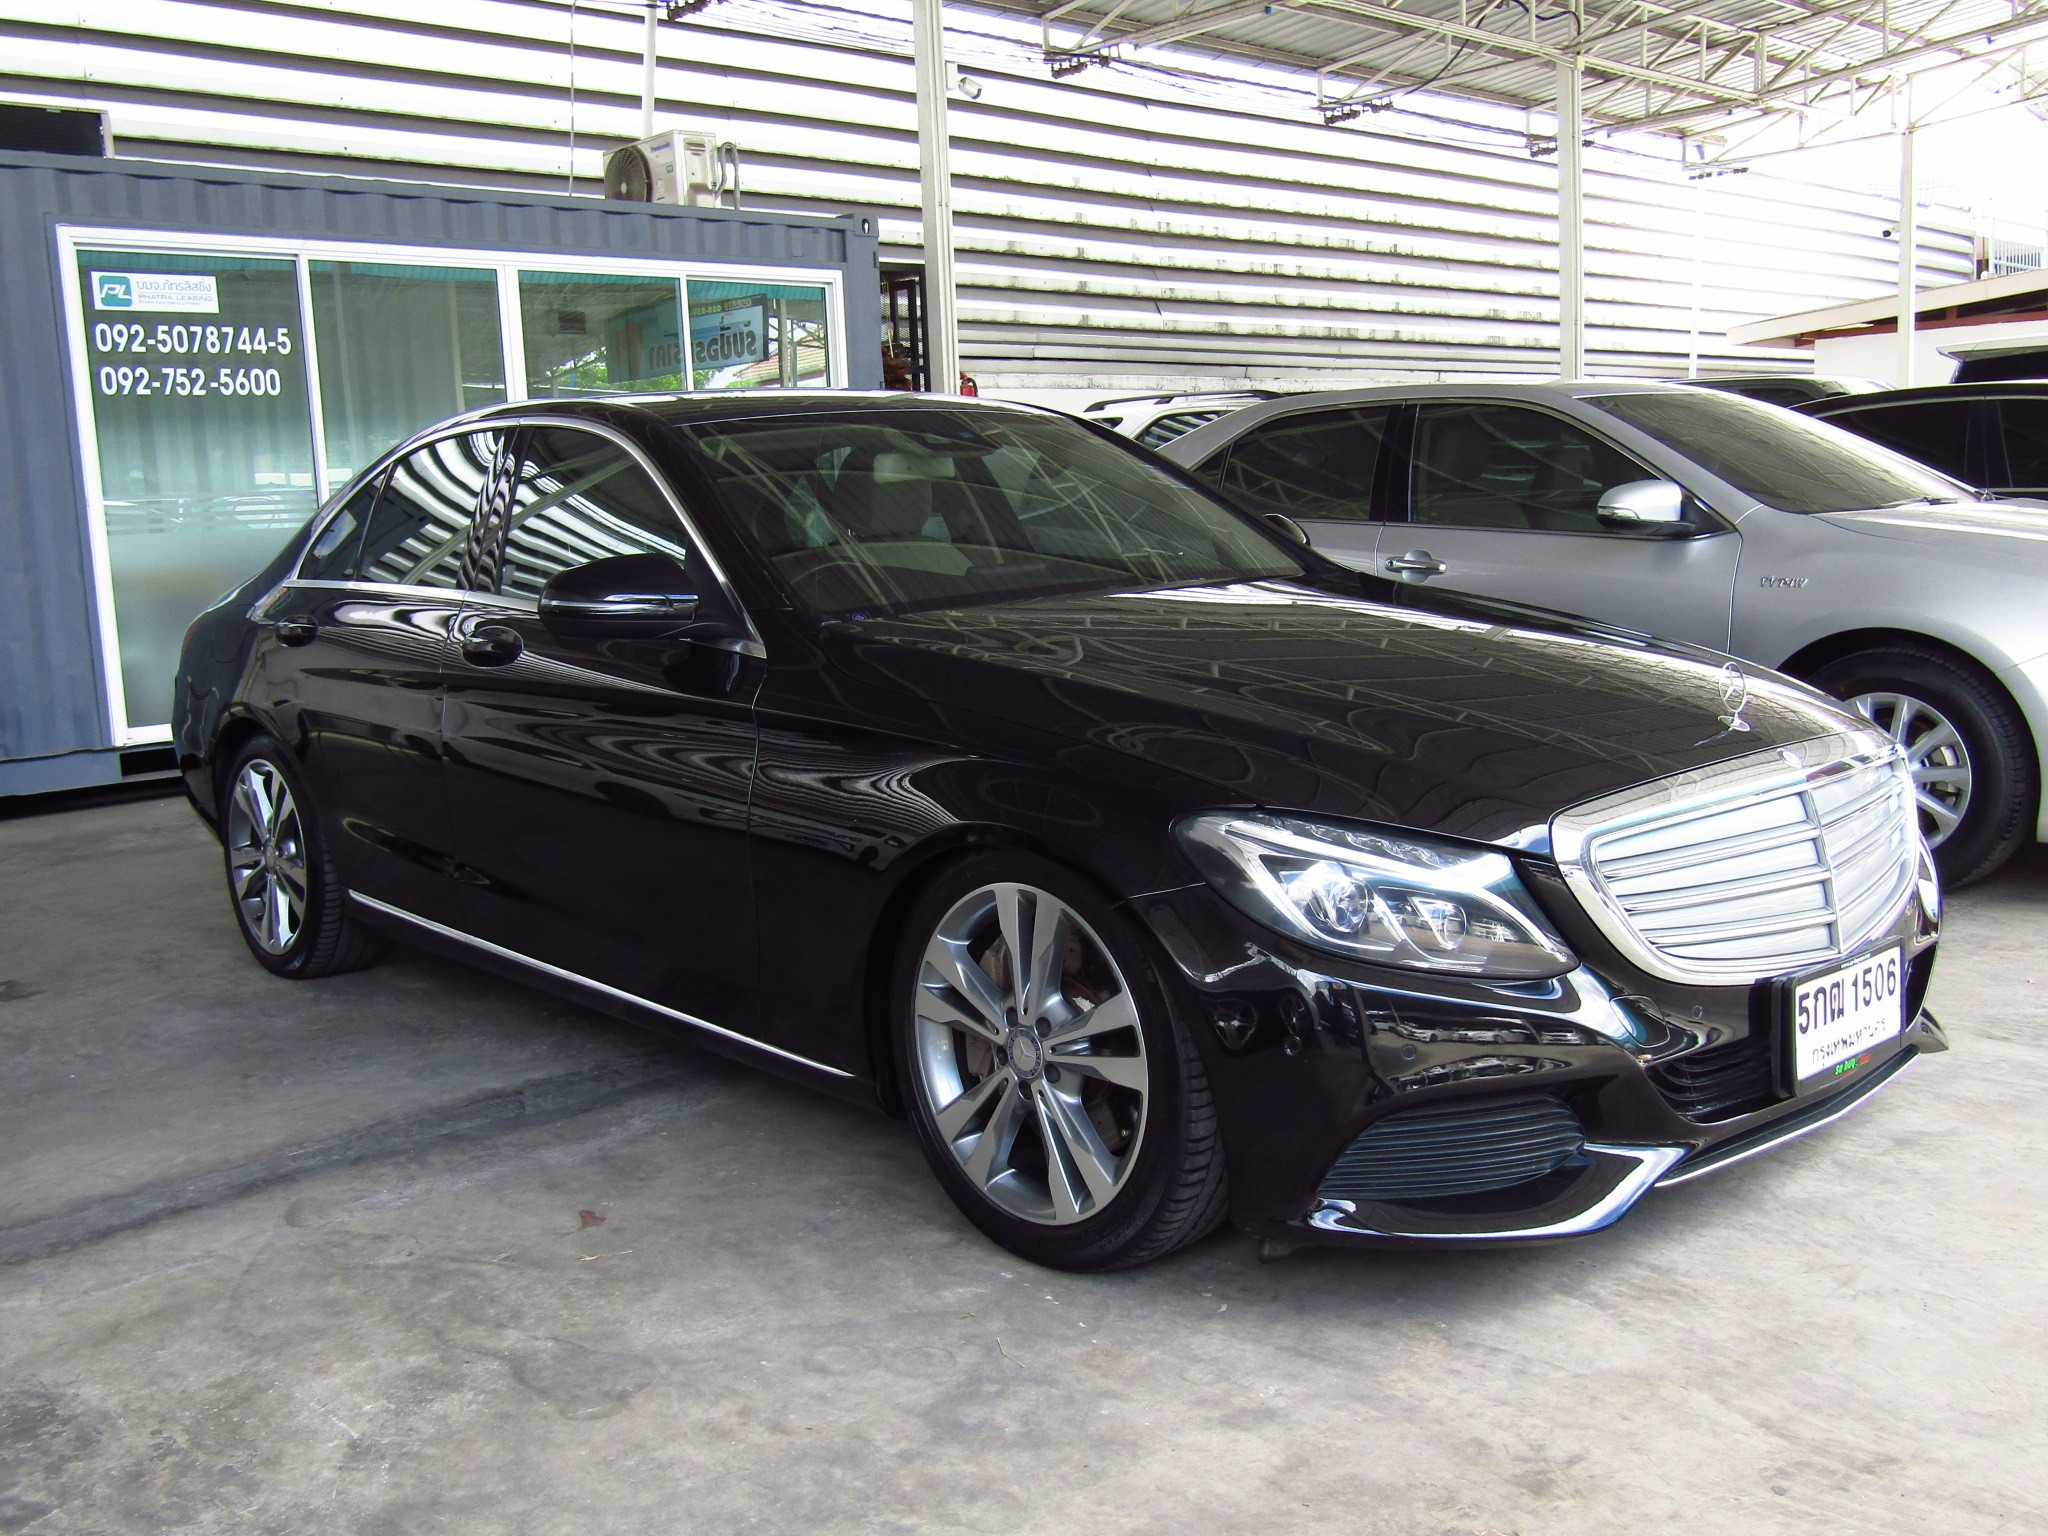 Mercedes-Benz C350 e  (110,xxx) Plug-in Hybrid Excusive  (ผ่อน 24,530บาท*60เดือน)